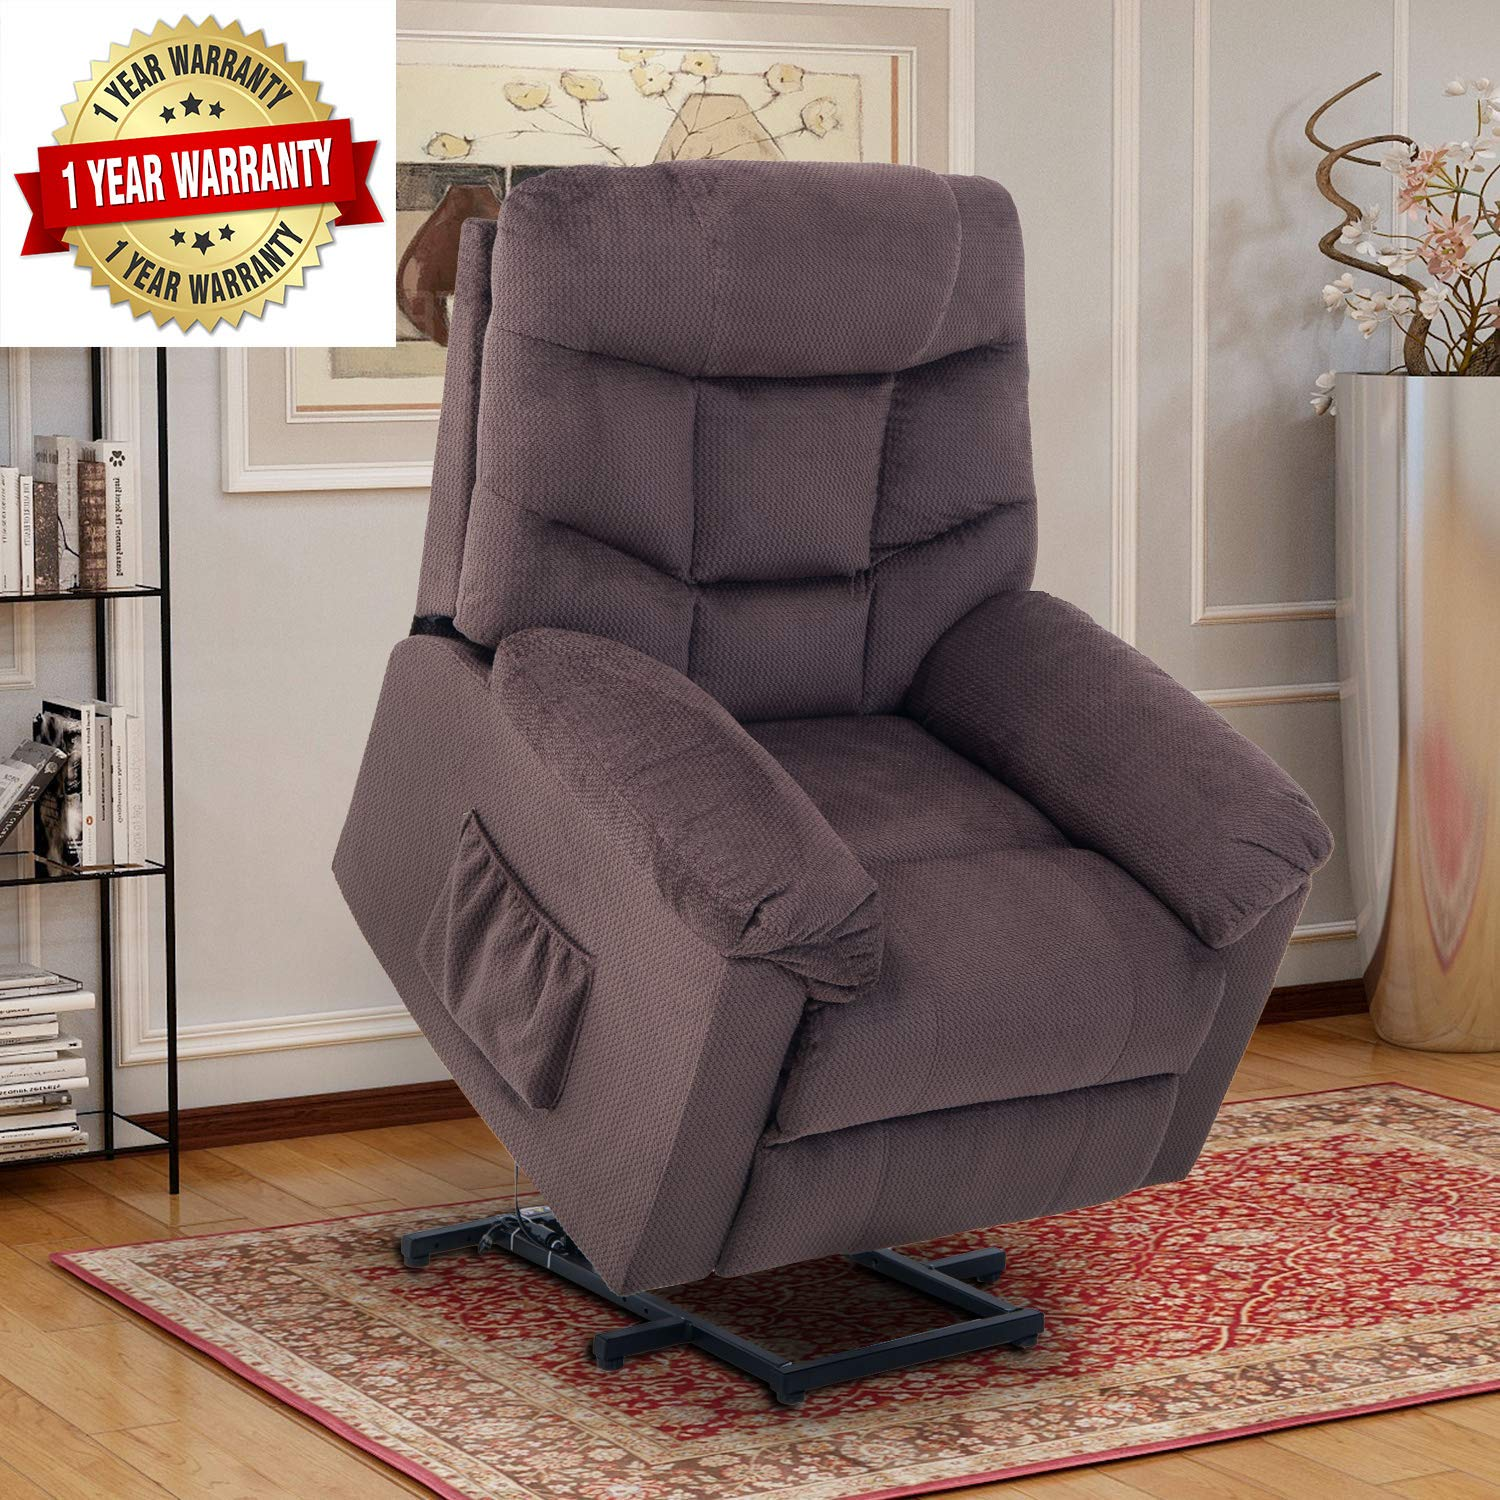 Lift Chairs for Elderly Lift Chairs Recliners Electric Recliner Chairs Lift Chairs with Remote Control Soft Fabric Upholstery Recliner Living Room Sofa by Merax